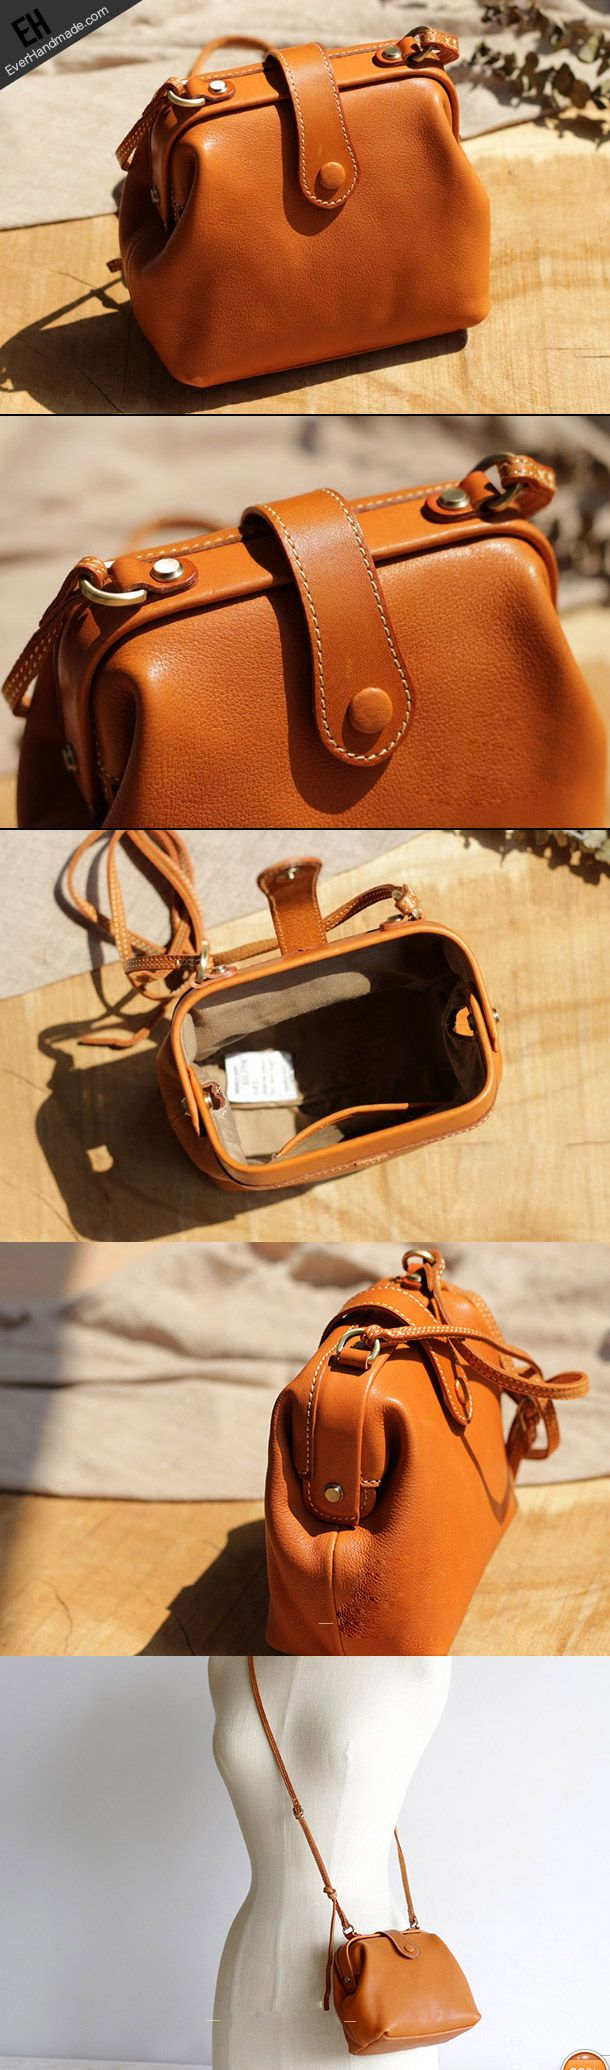 Handmade Leather phone bag for women leather shoulder bag